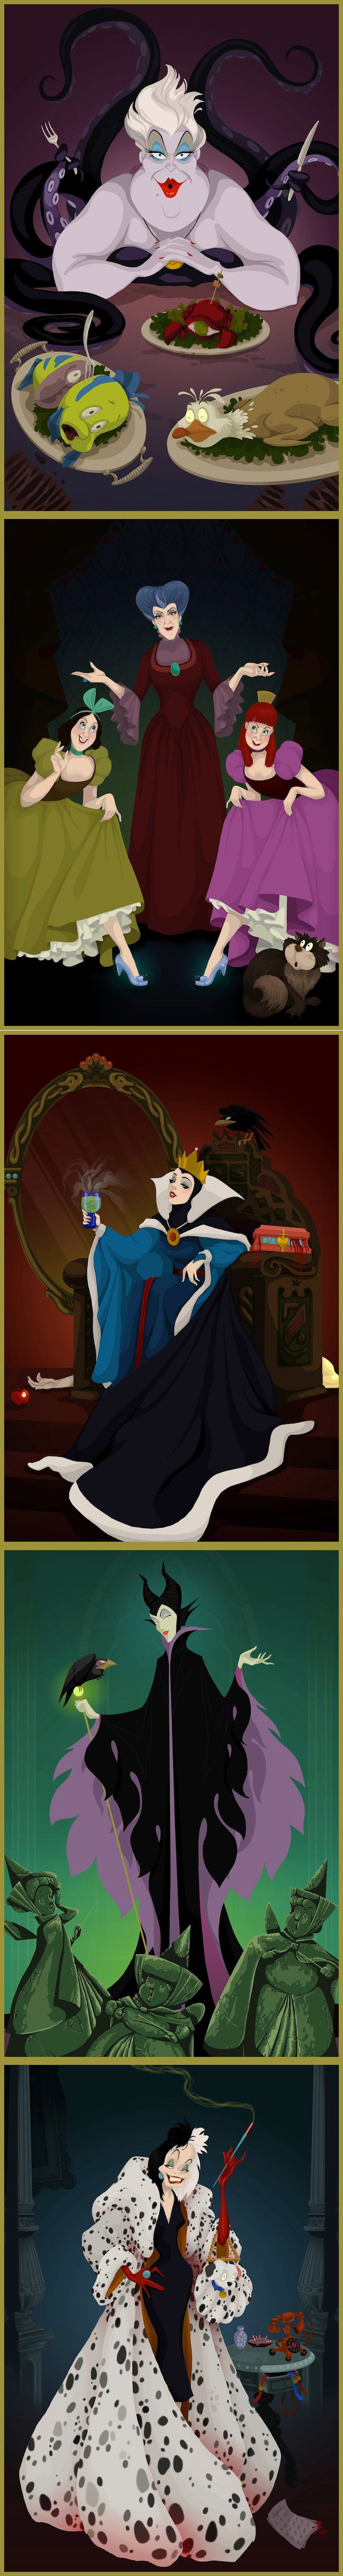 Happily ever after no more: if Disney villains had it their way.